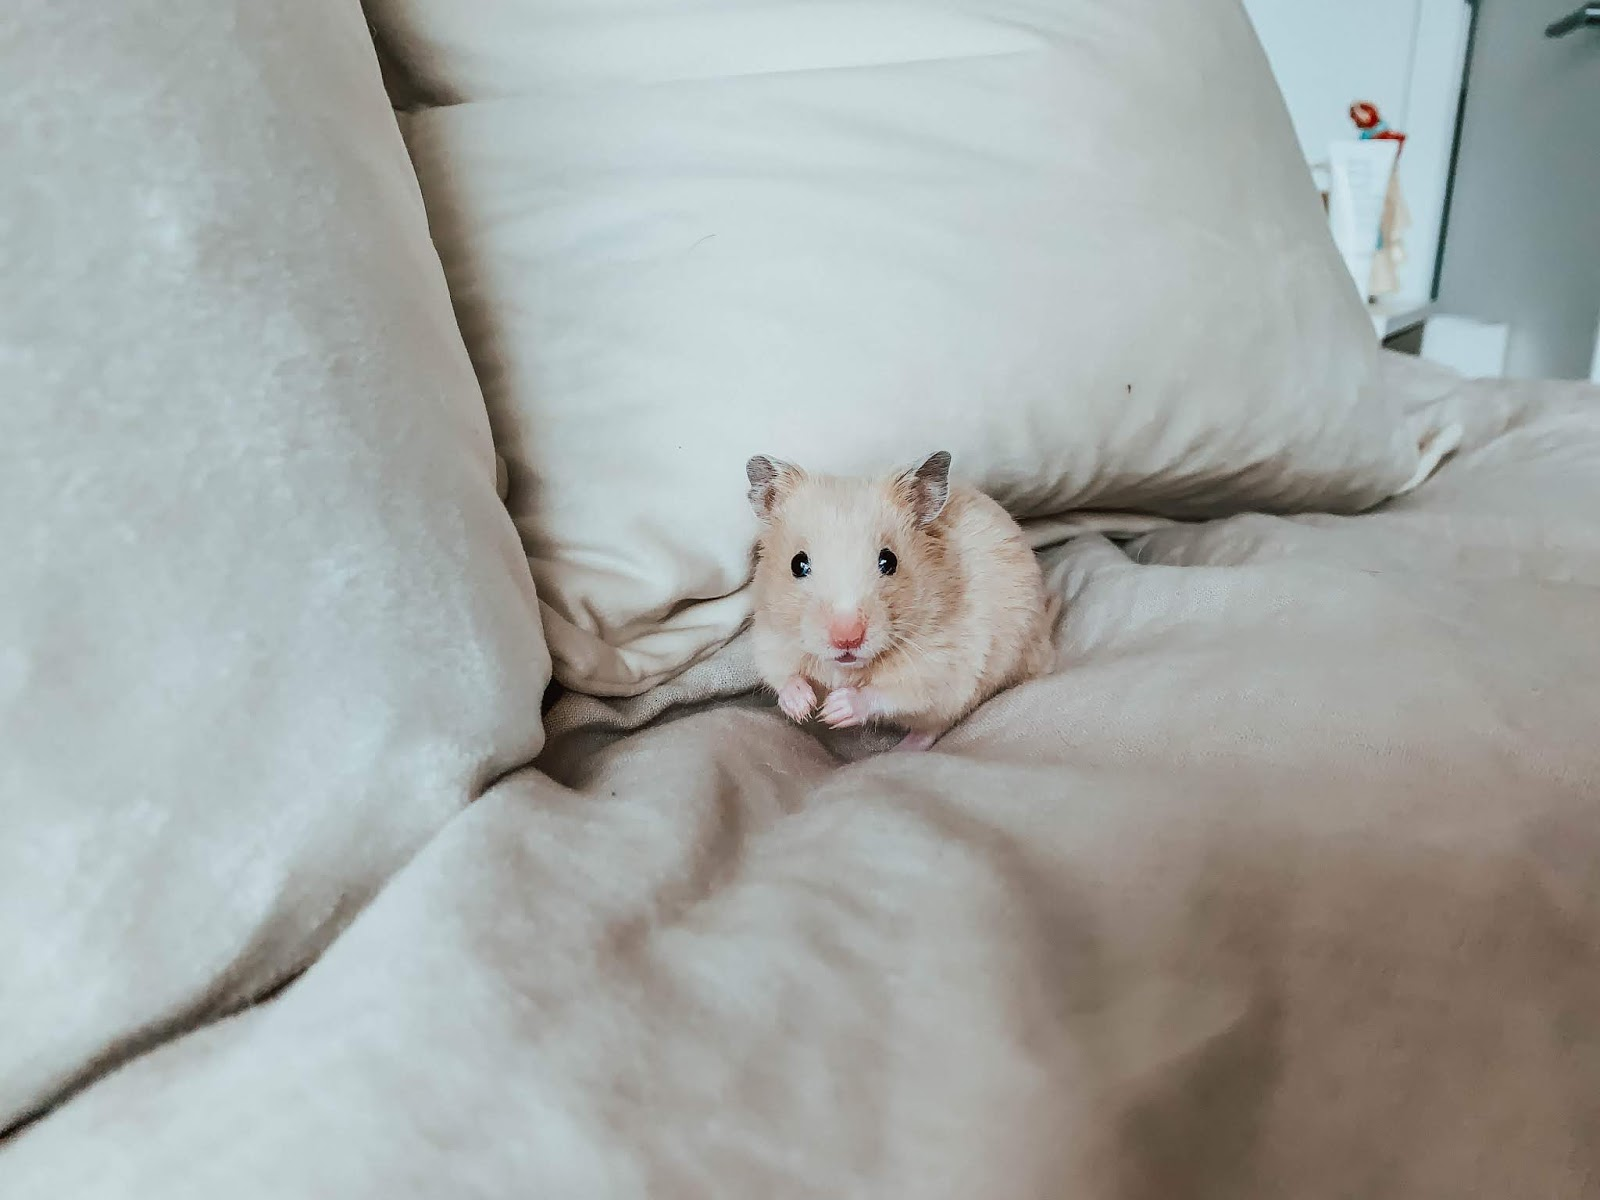 I GOT A HAMSTER! & Other Things I'm Doing During Quarantine